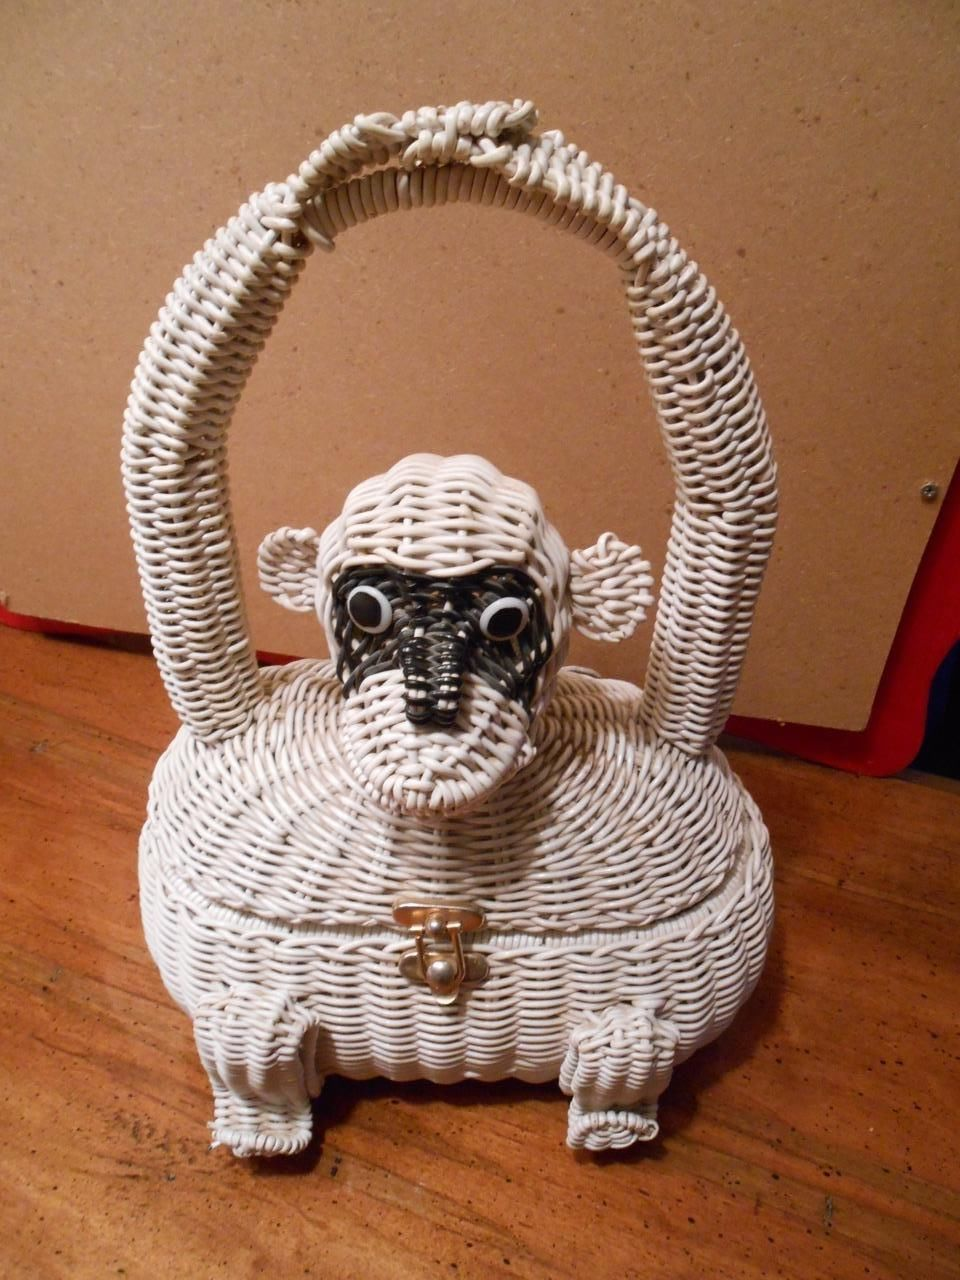 Vintage Wicker Monkey Purse. Marcus Brothers 1960s